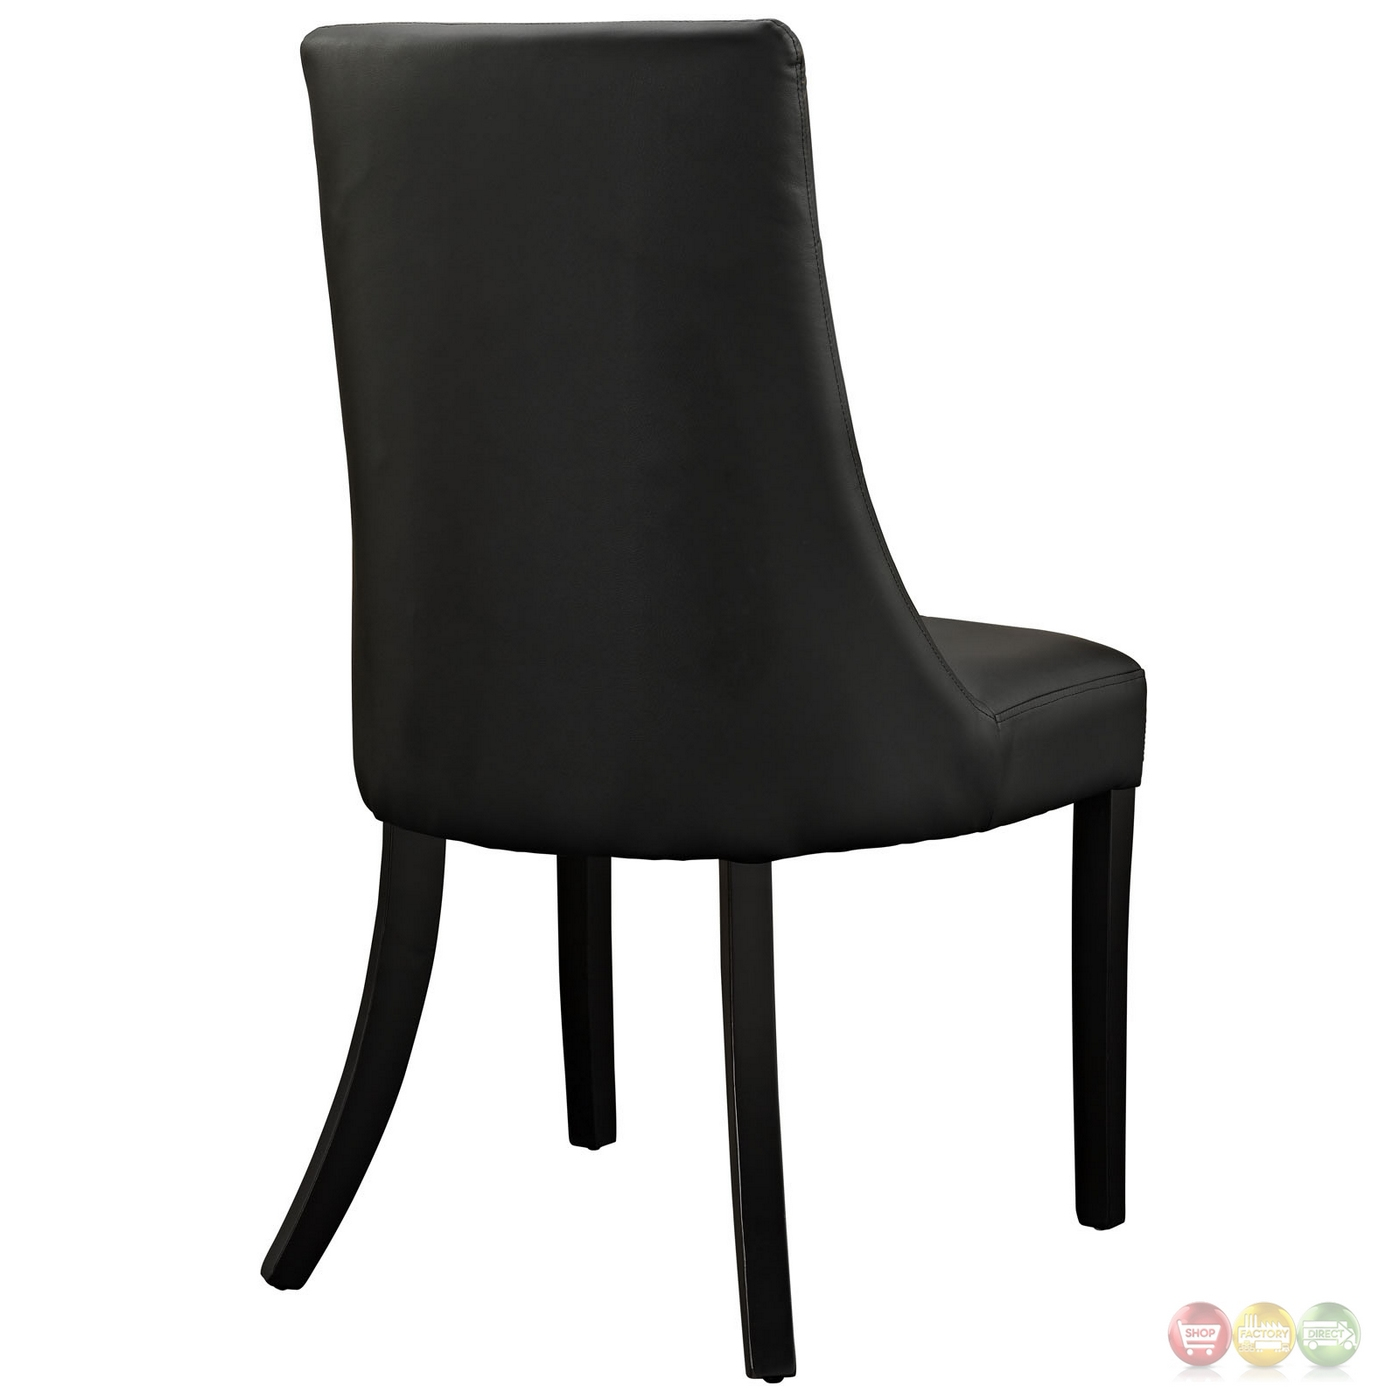 Noblesse Contemporary Dining Patterned Vinyl Side Chair Black